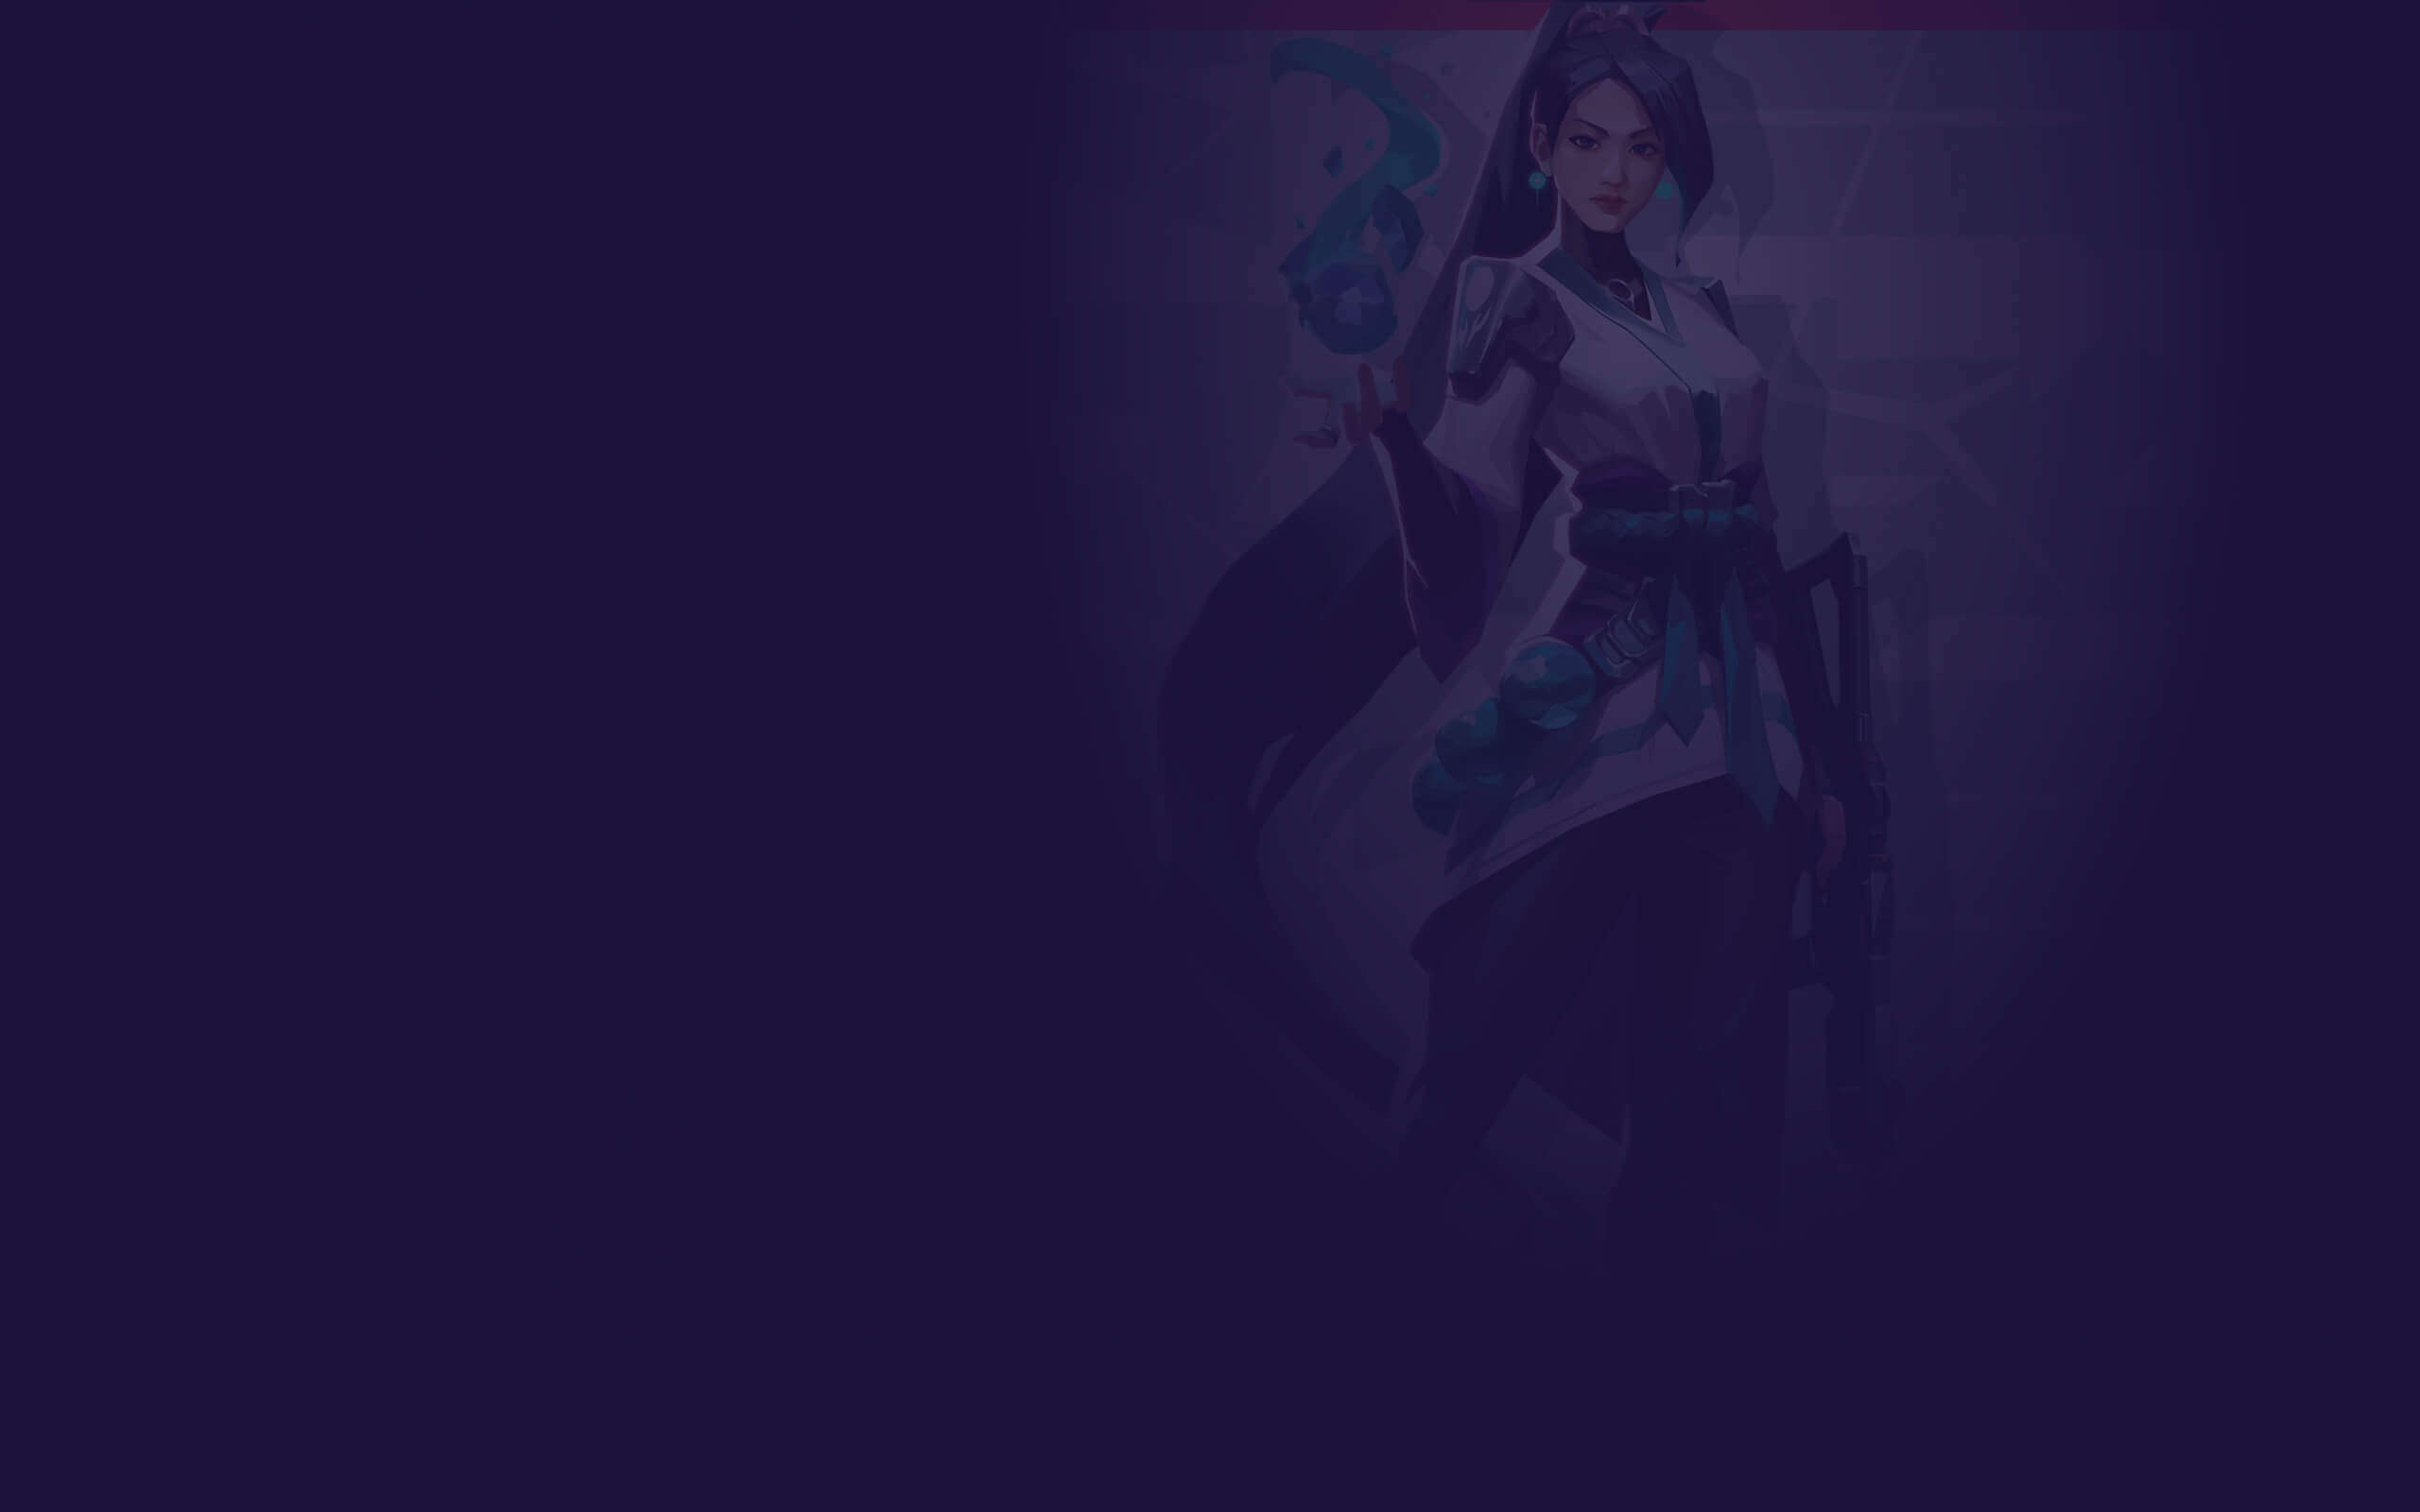 Page background image